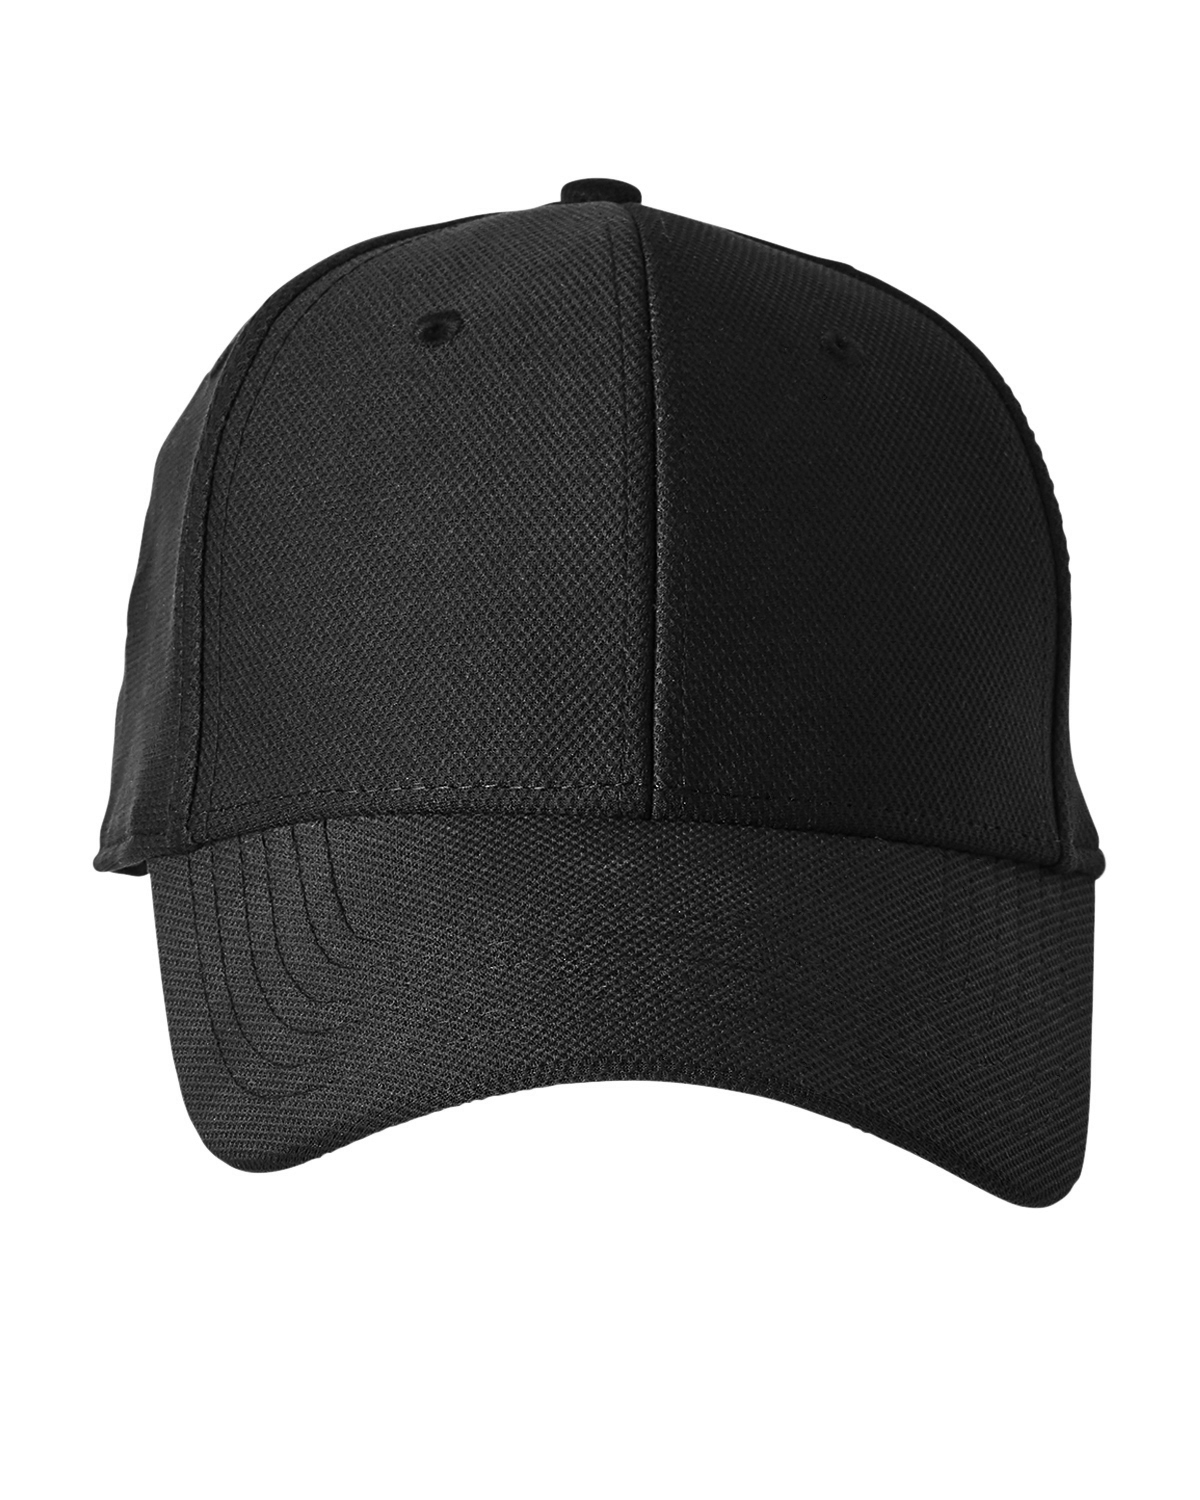 Under Armour Blitzing Curved Cap